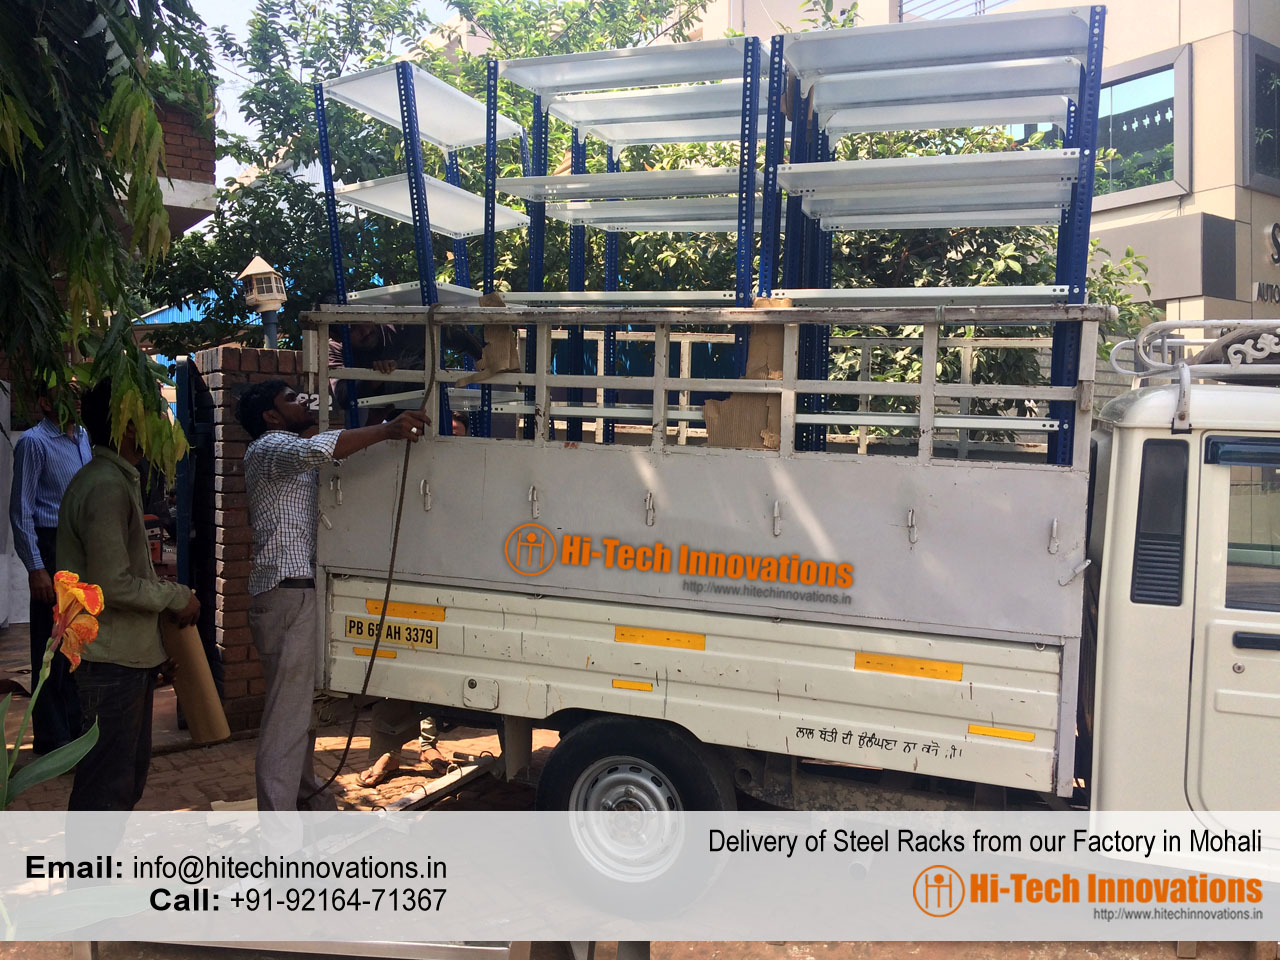 Delivery of Steel Racks from our Factory